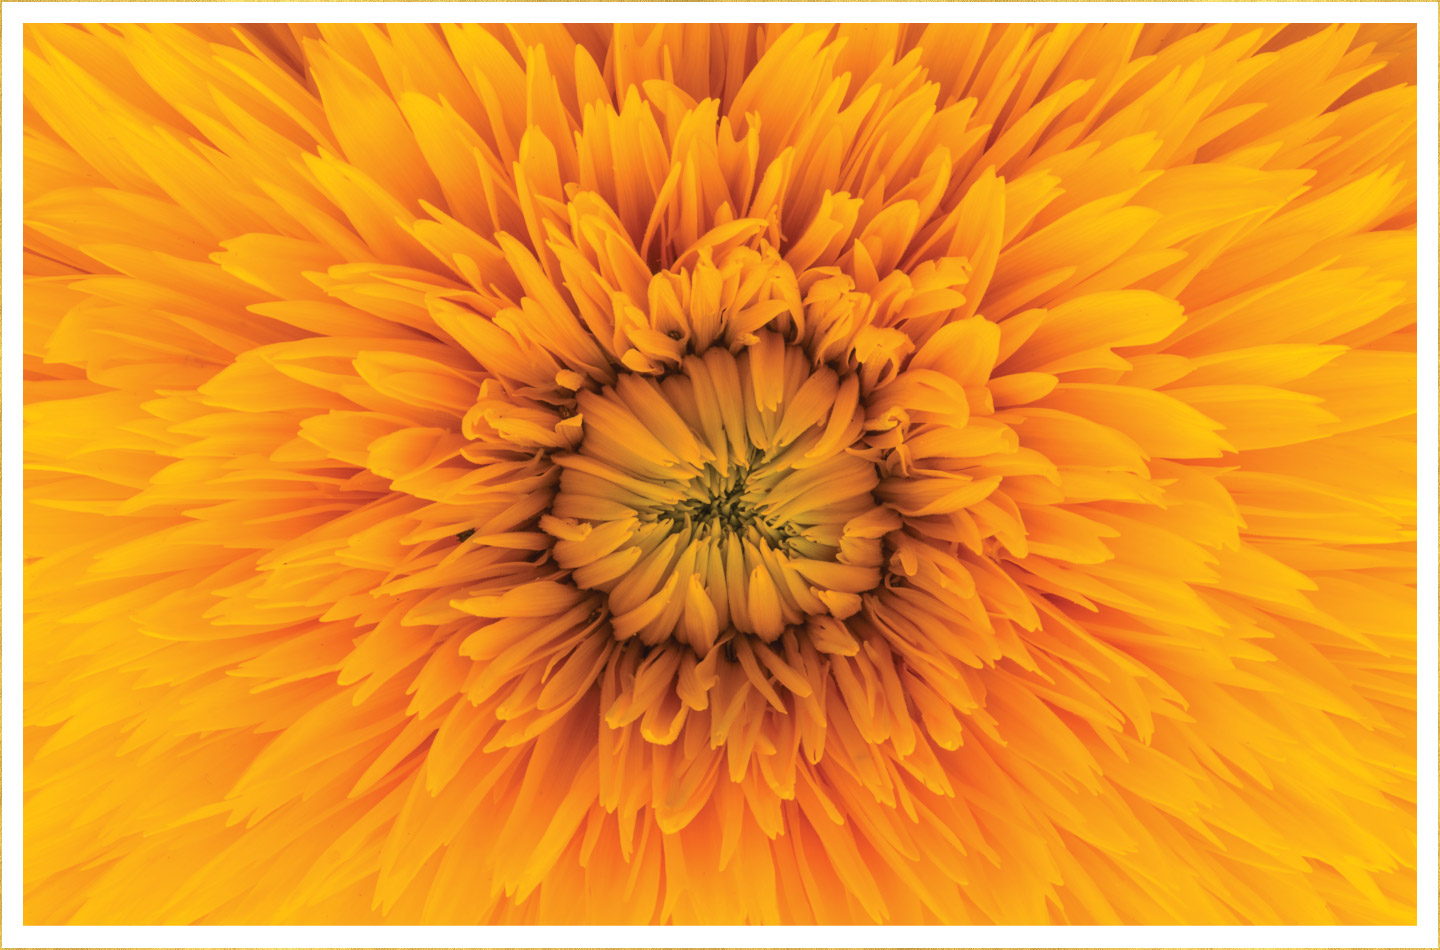 30 Types Of Yellow Flowers Ftd Com It seems to have recovered from what was perceived as a slightly affected. 30 types of yellow flowers ftd com